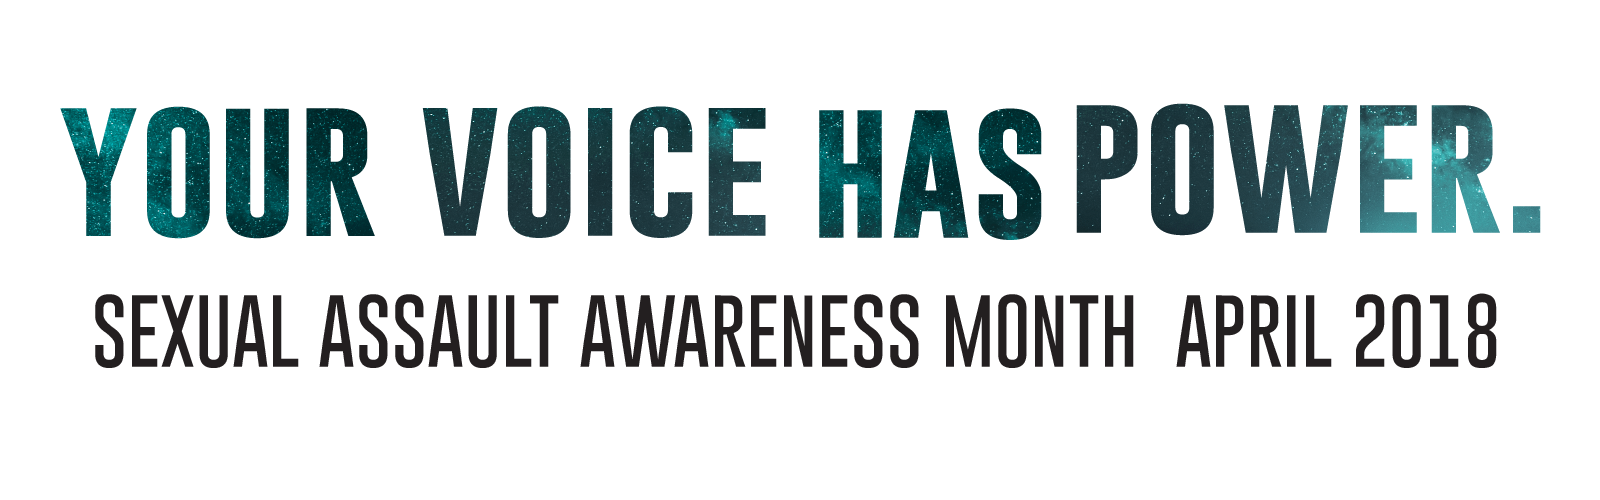 Your Voice Has Power: Sexual Assault Awareness Month 2018